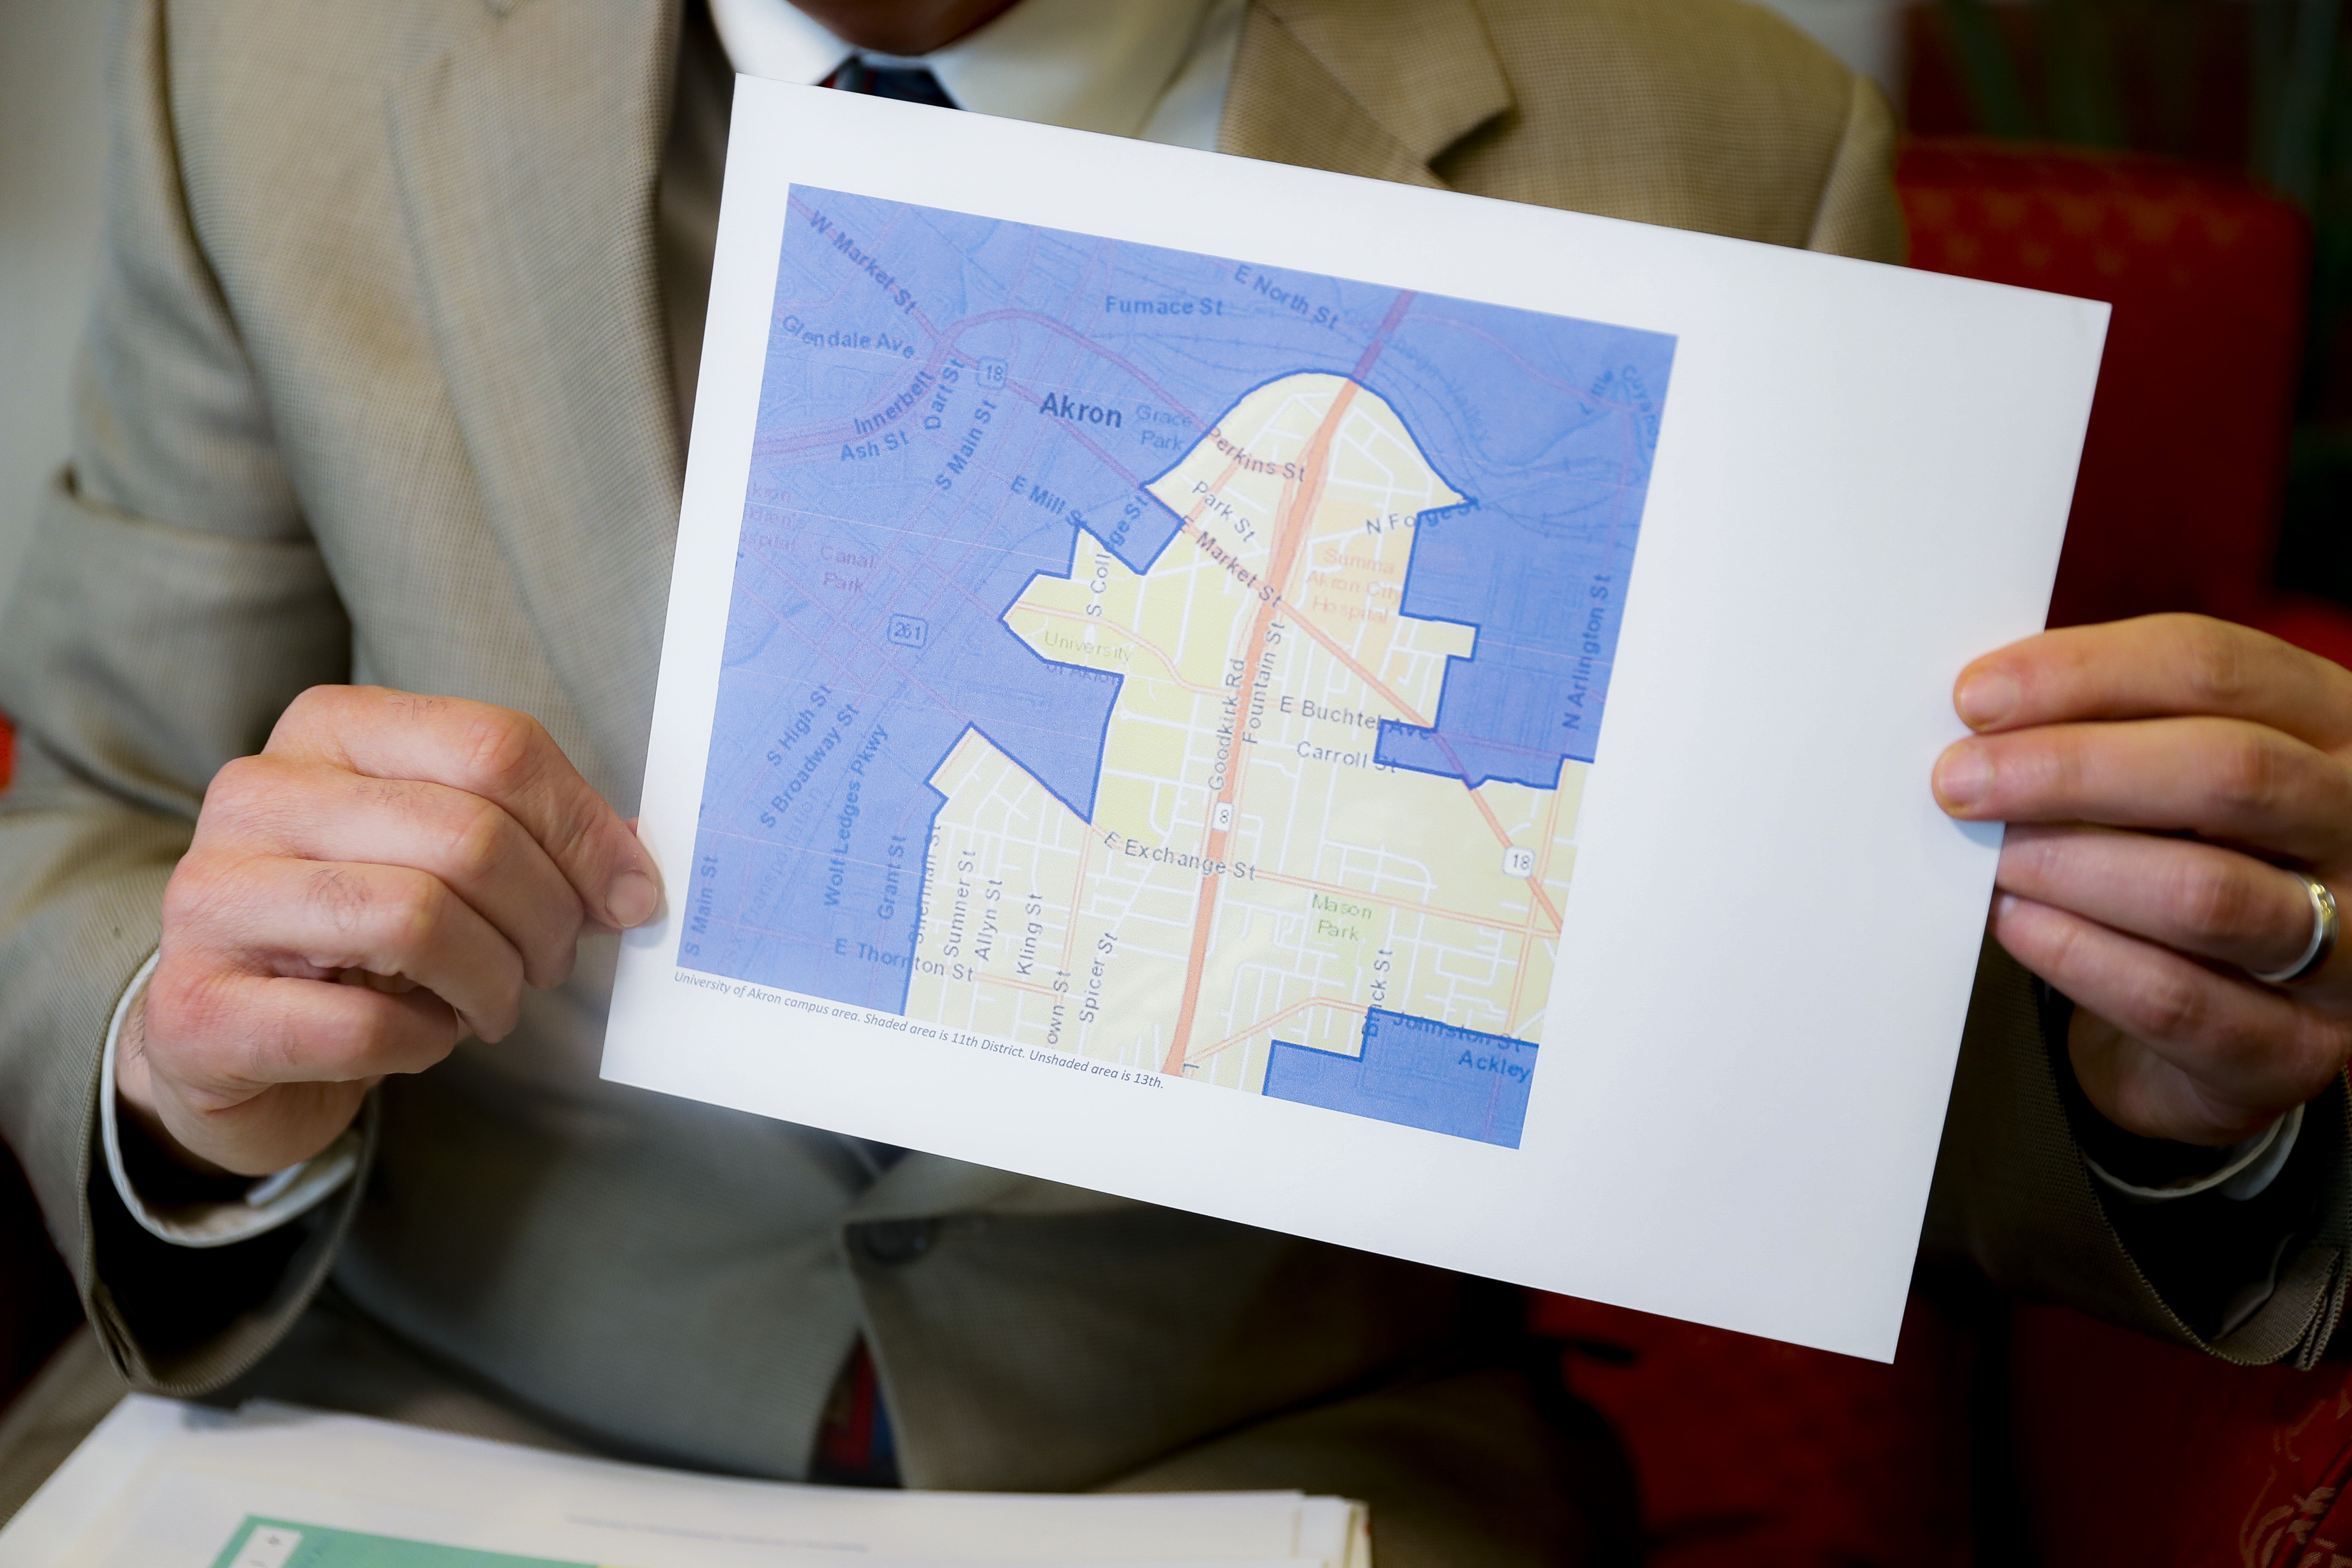 States poised to take up fight over partisan gerrymandering